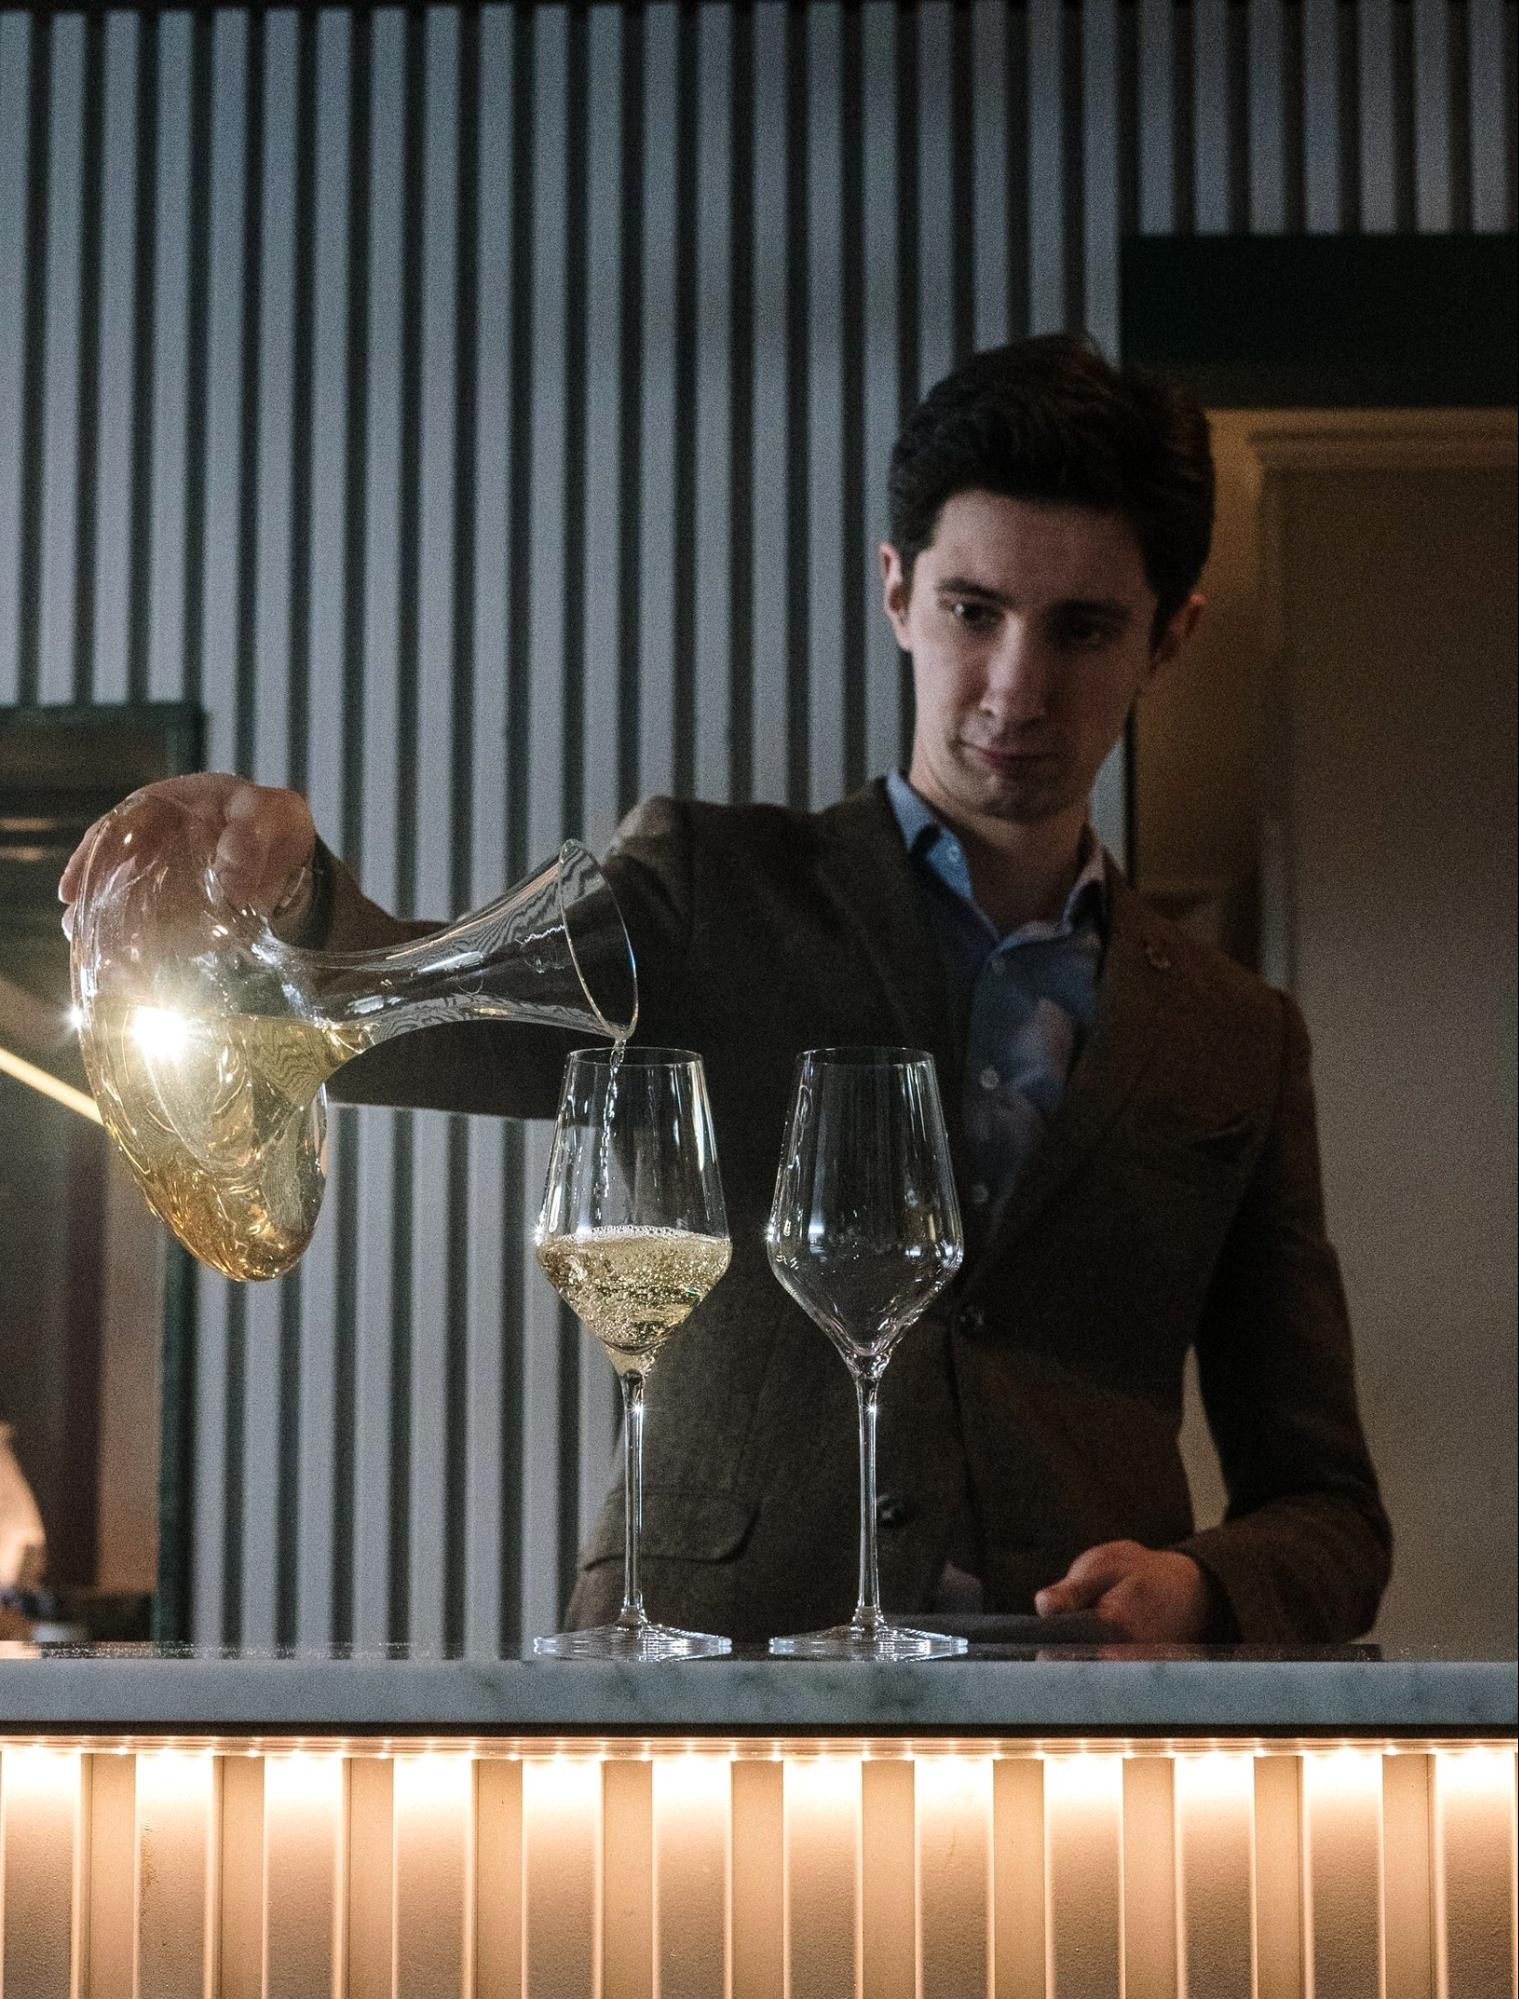 Man pouring white wine; Wine sommelier